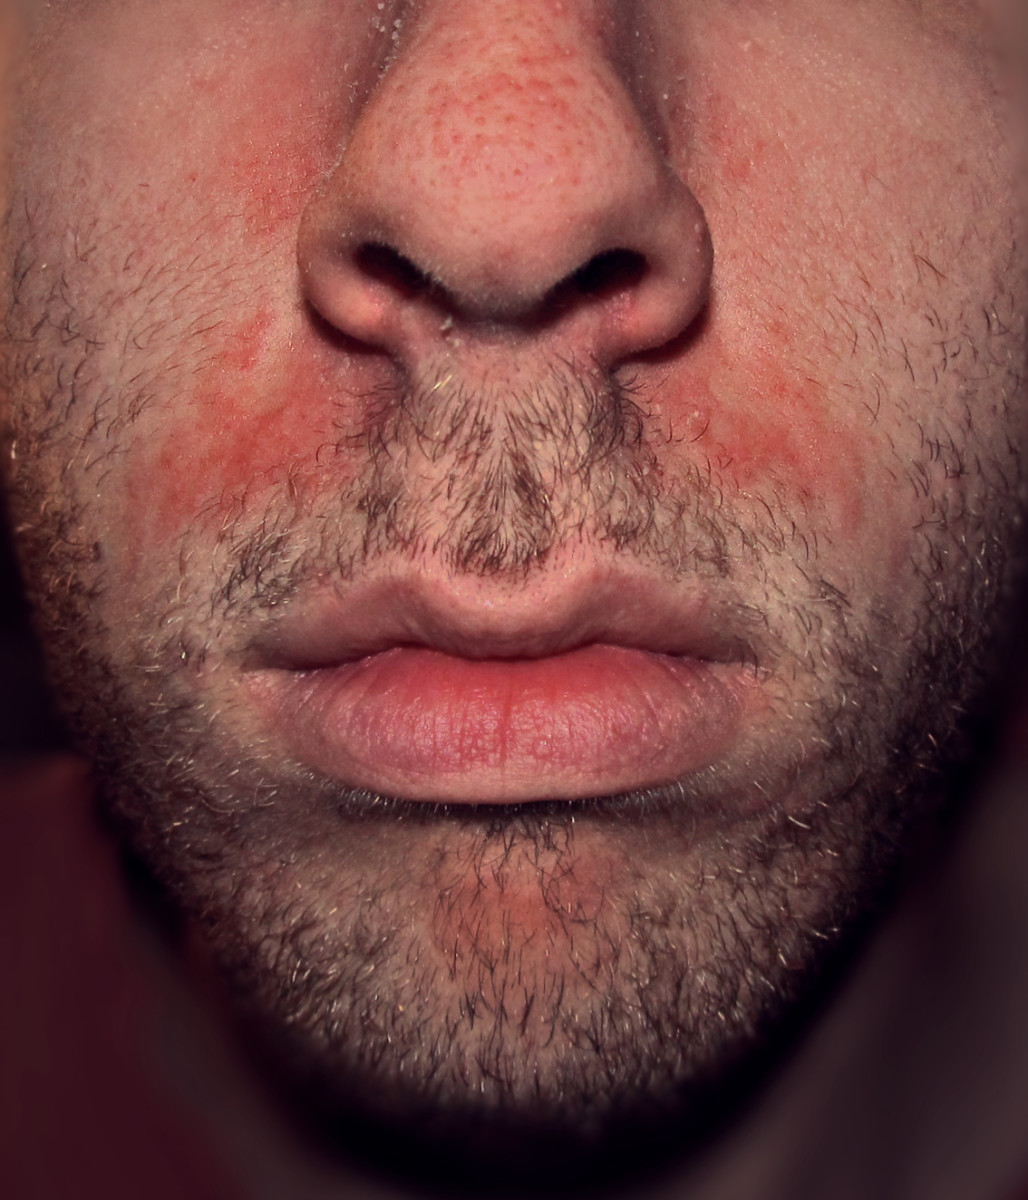 Itchy, flaking, greasy, red, and inflamed skin commonly occurs on the face, at the corners of the nostrils.